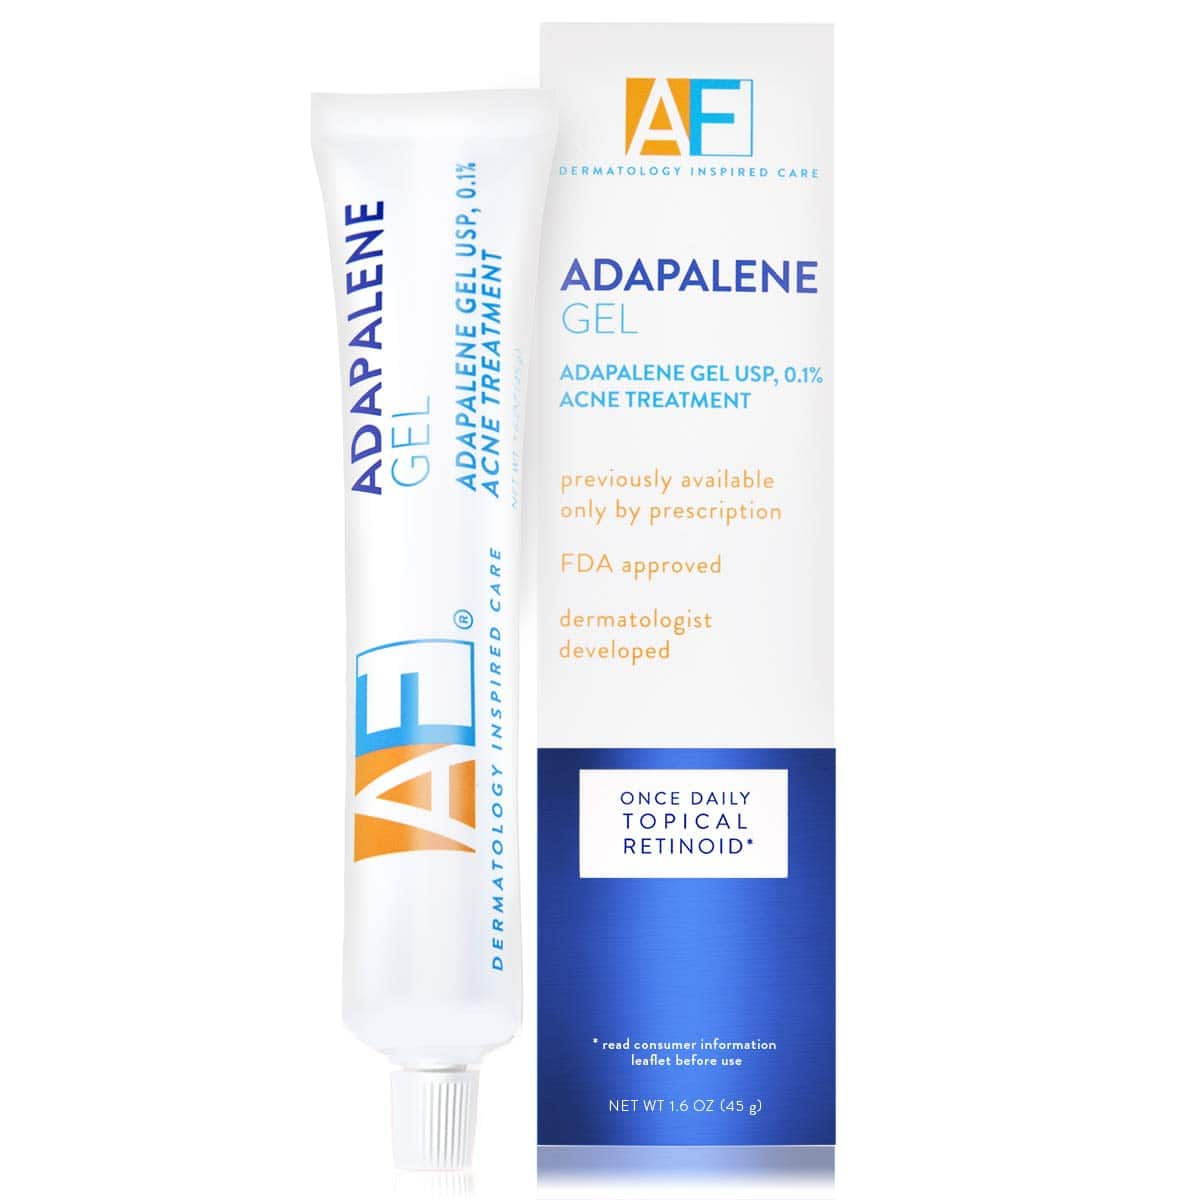 Acne Free Adapalene Gel 0.1%, Once-Daily Topical Retinoid Acne Treatment, 45 Gram, 90 Day Supply  - Amazon $18.04 S&S